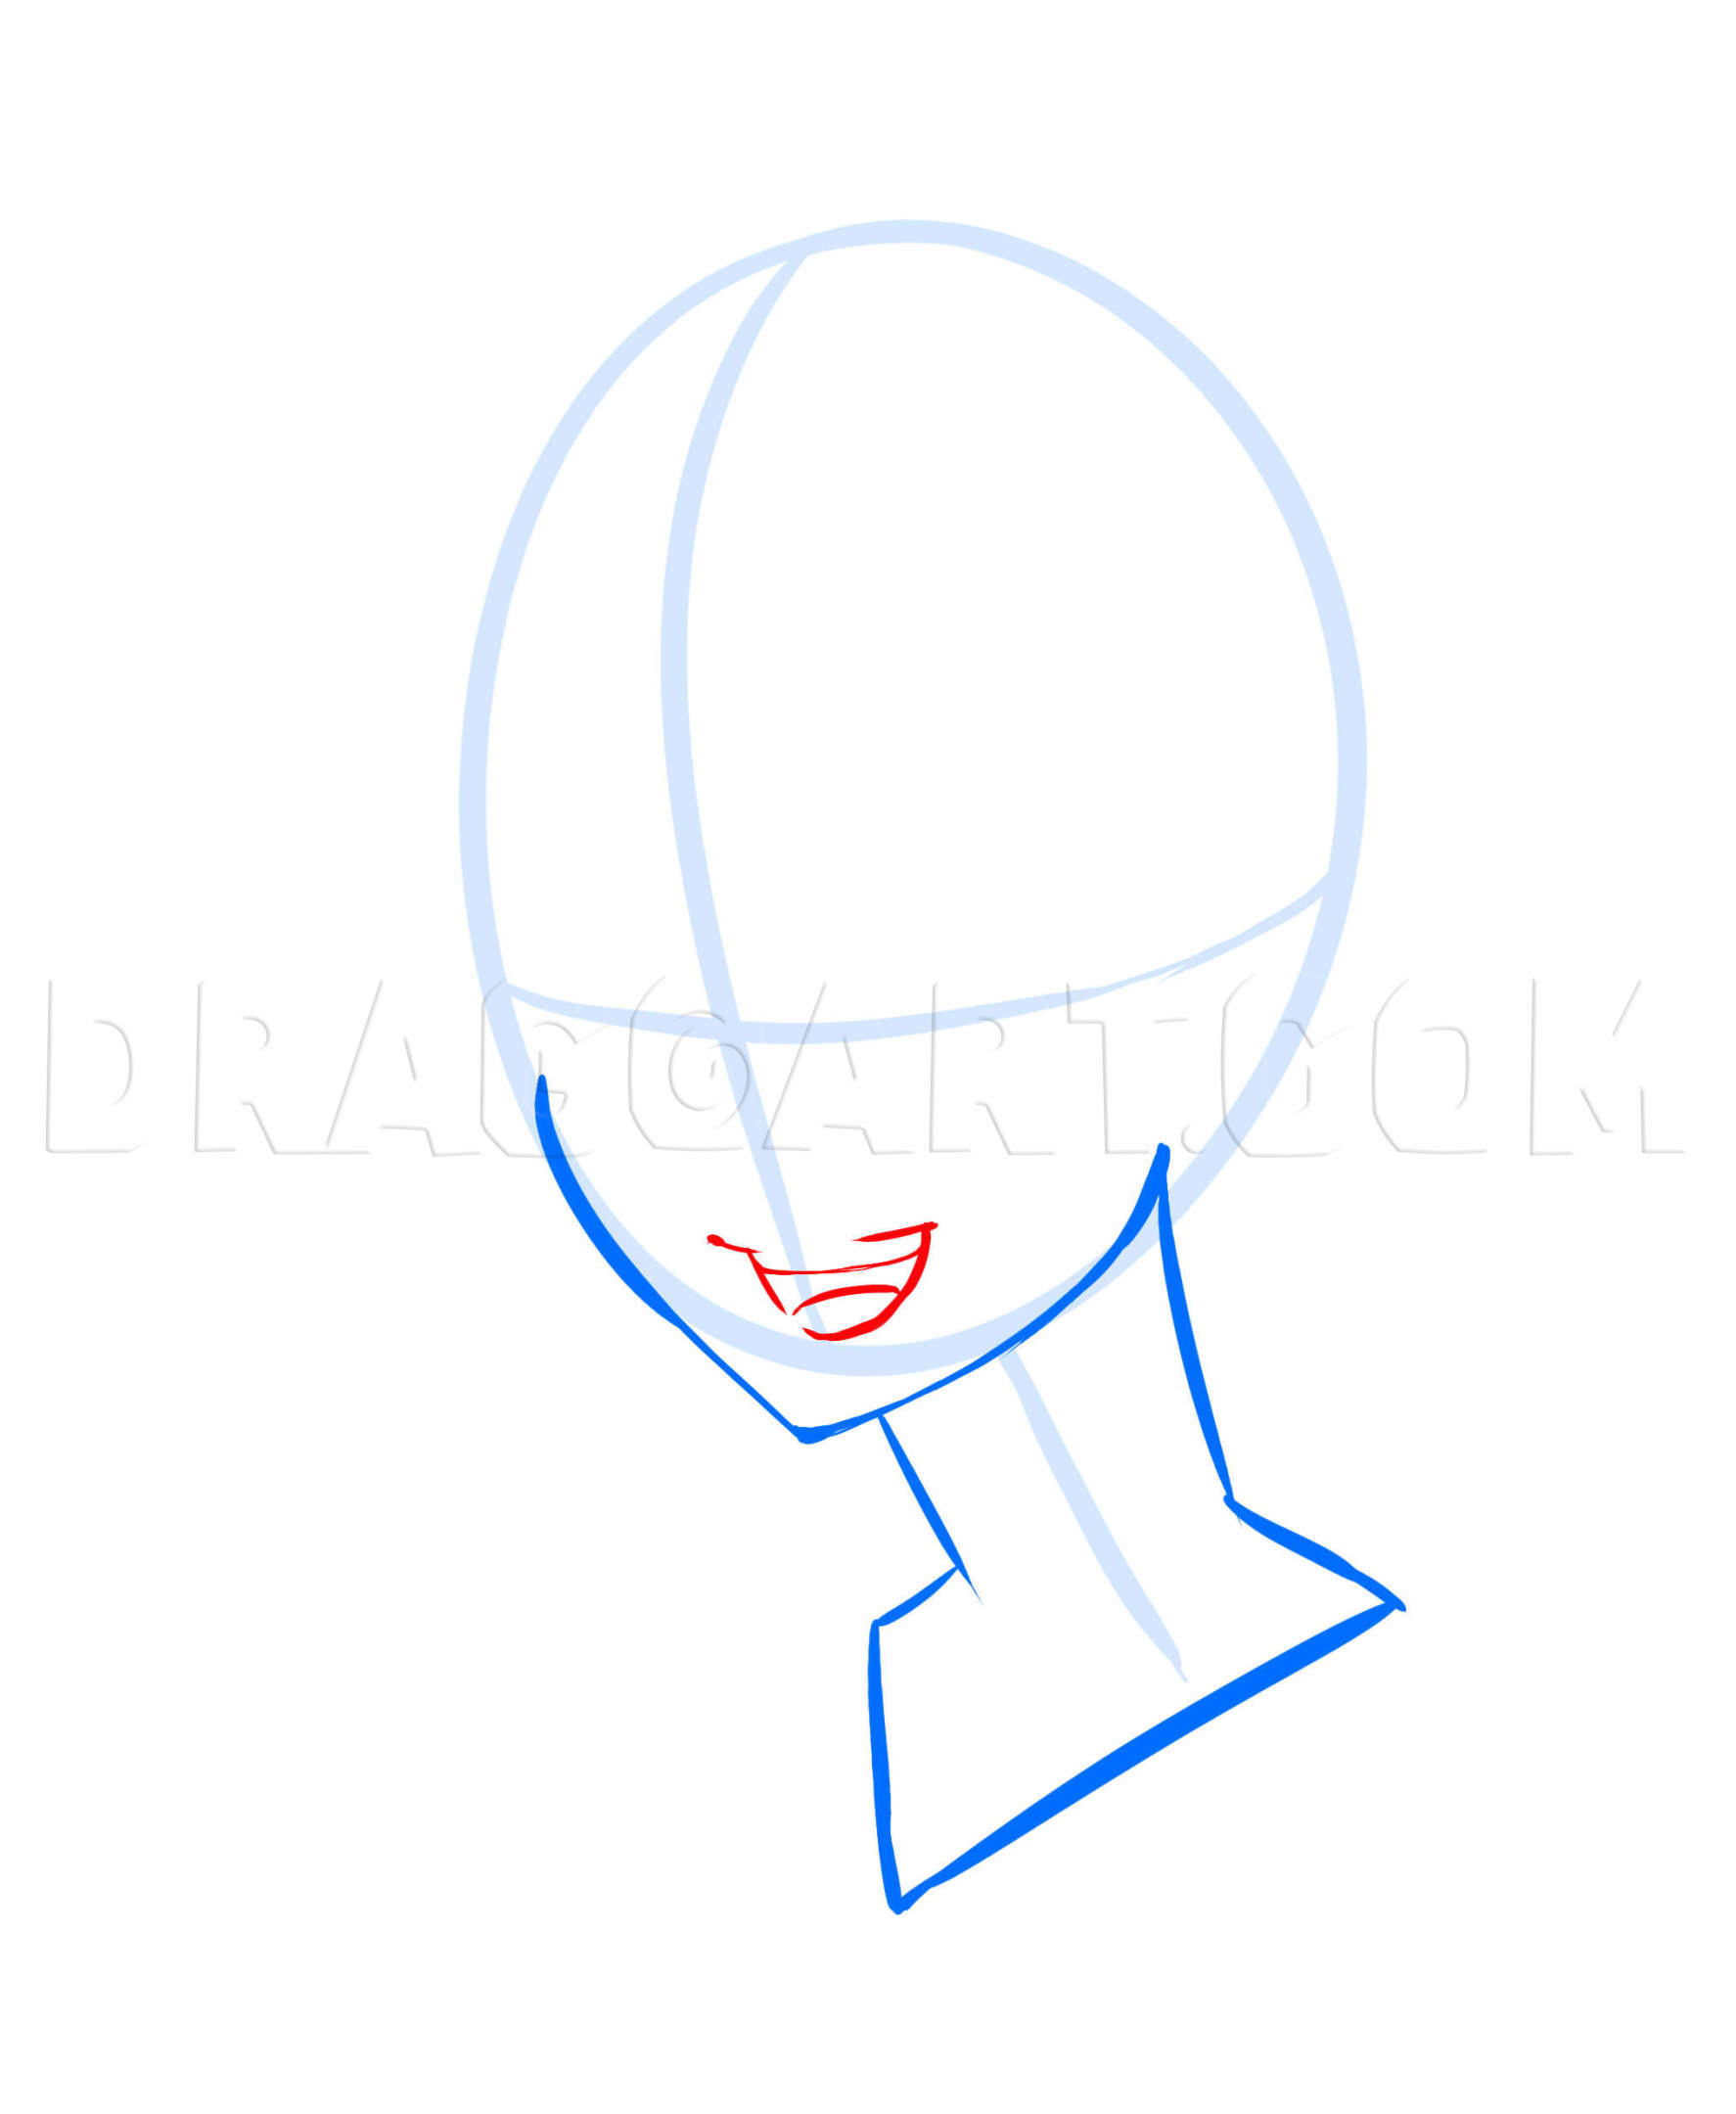 How To Draw An Anime Mouth : anime, mouth, Anime, Faces,, Step,, Drawing, Guide,, PuzzlePieces, Dragoart.com